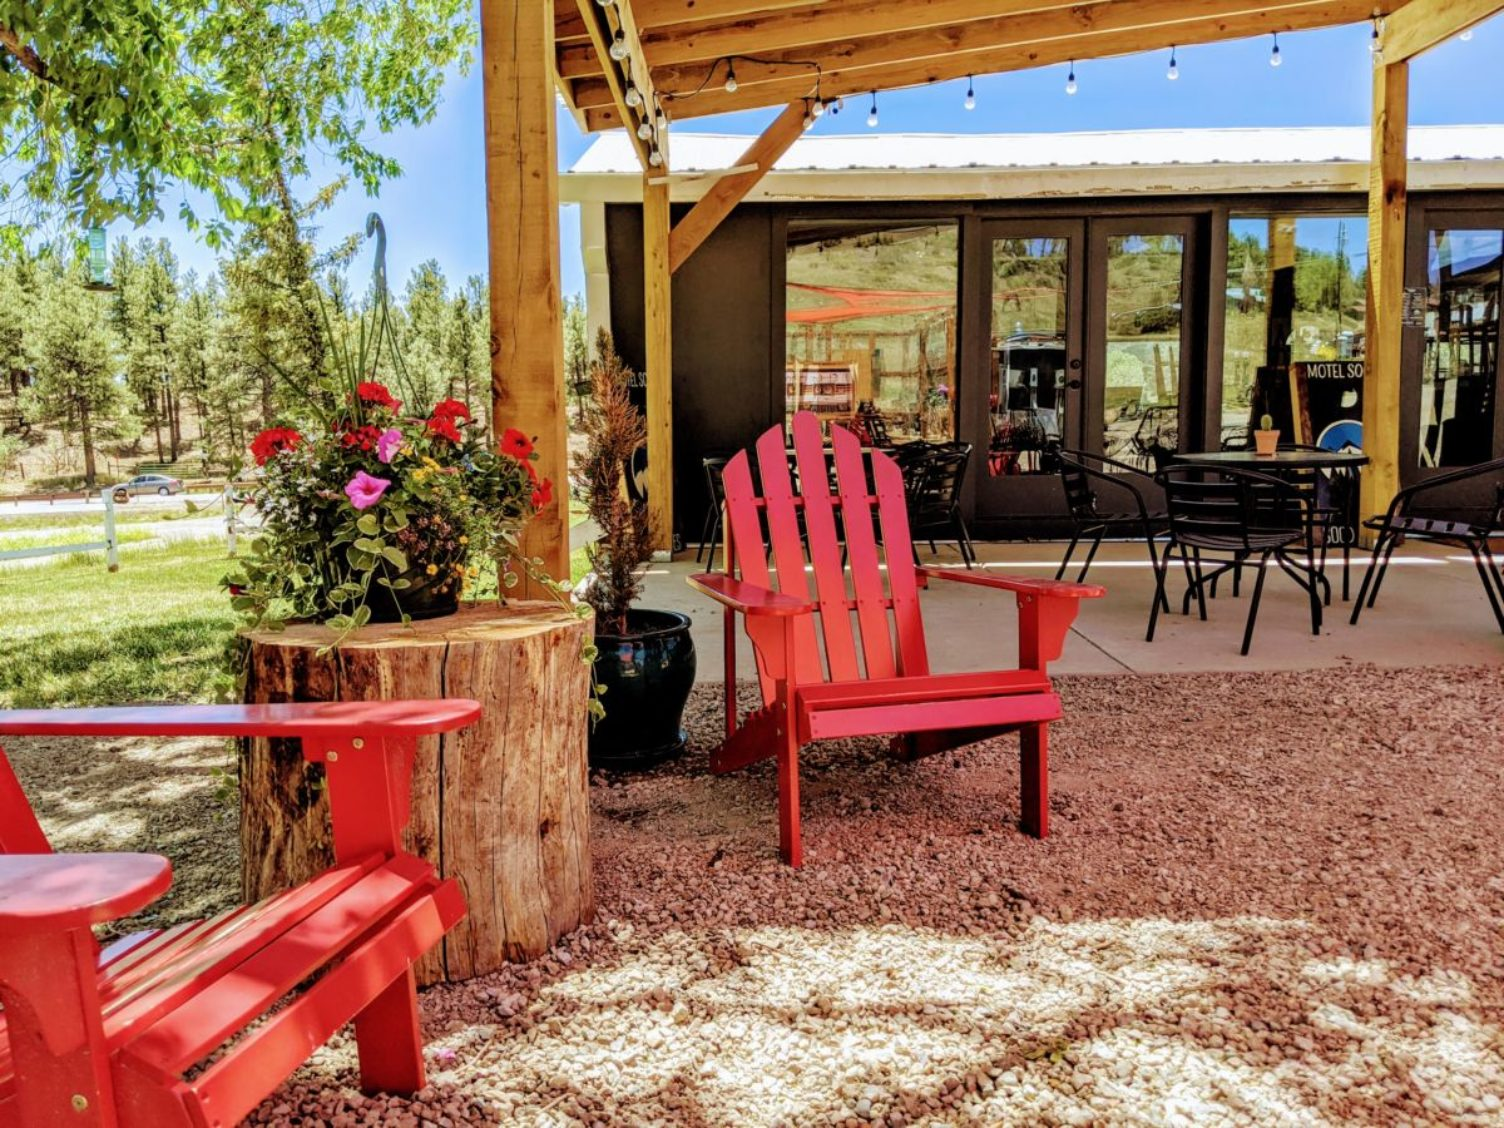 Outdoor patio at the Motel SOCO with red lawn chairs and tables in the background.